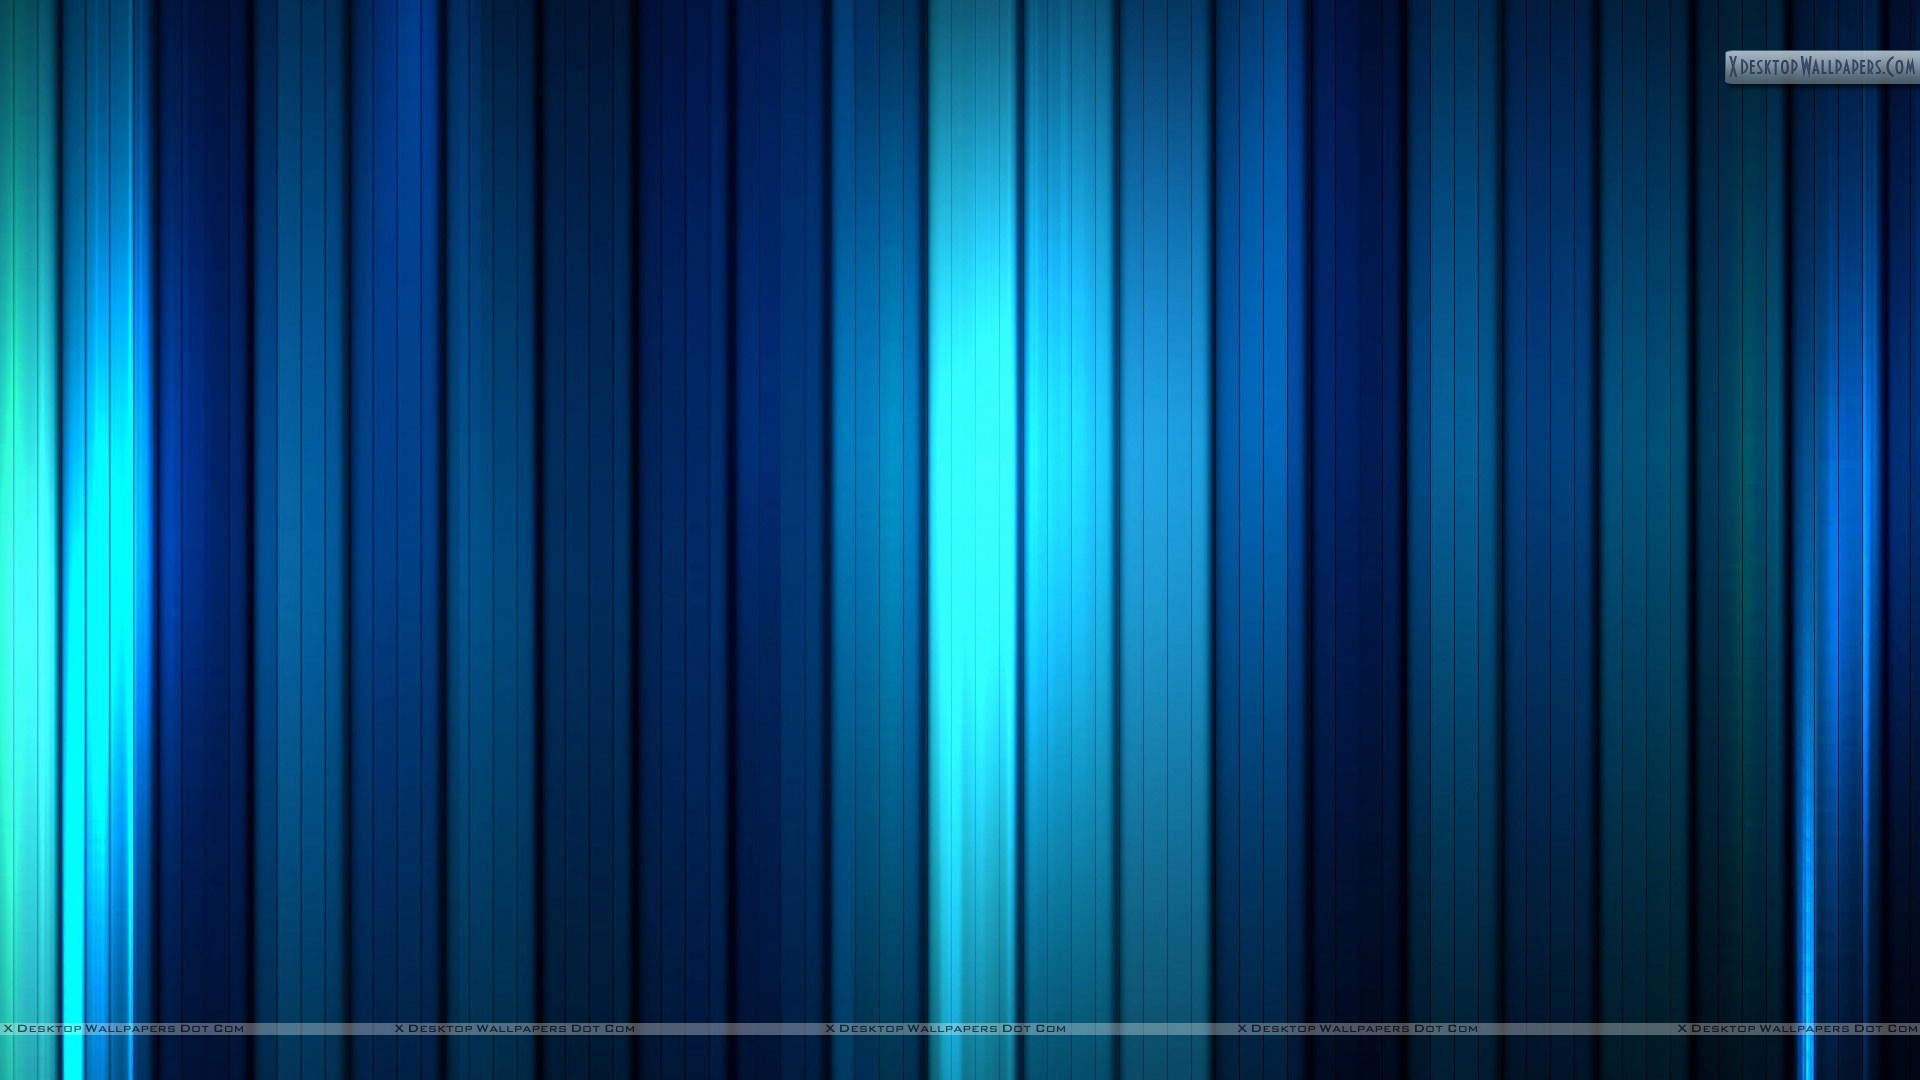 Awesome Blue Blue Sea Wallpaper: Cool Blue Wallpaper Best Free 1920x1080px